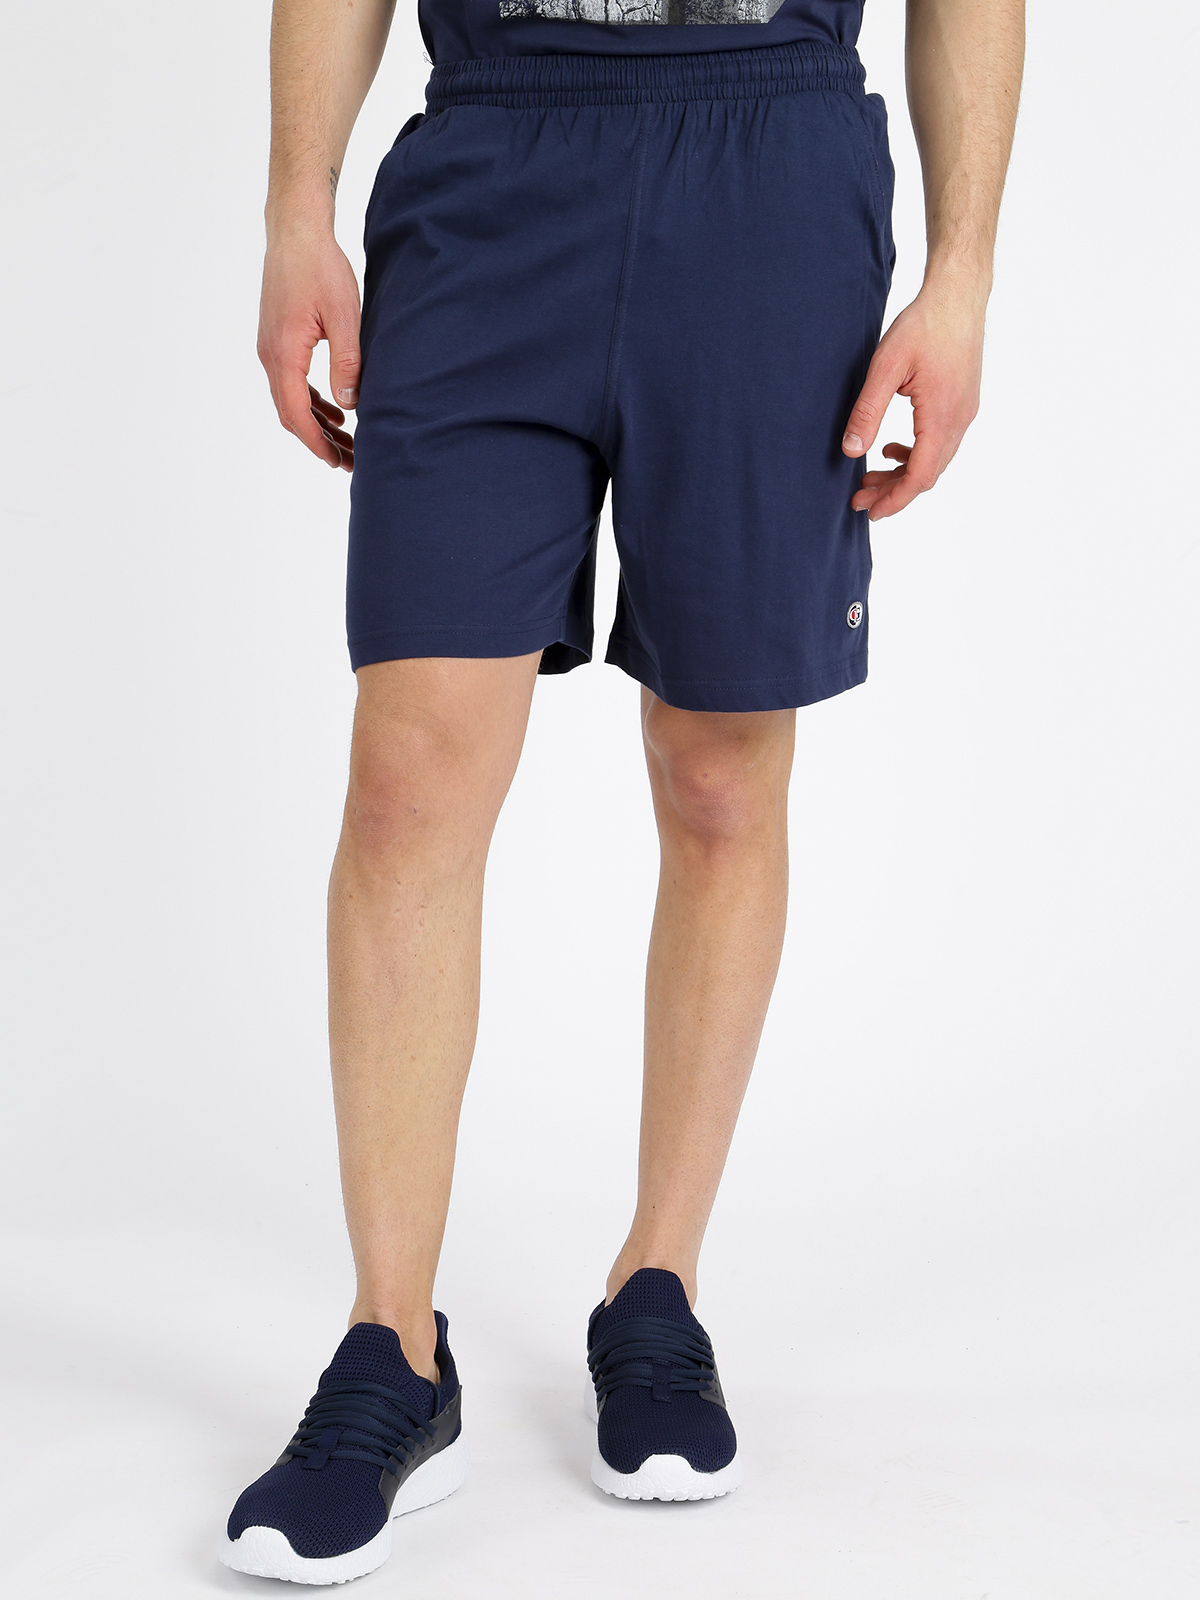 GREENLAND Men's Summer Casual Sports Shorts